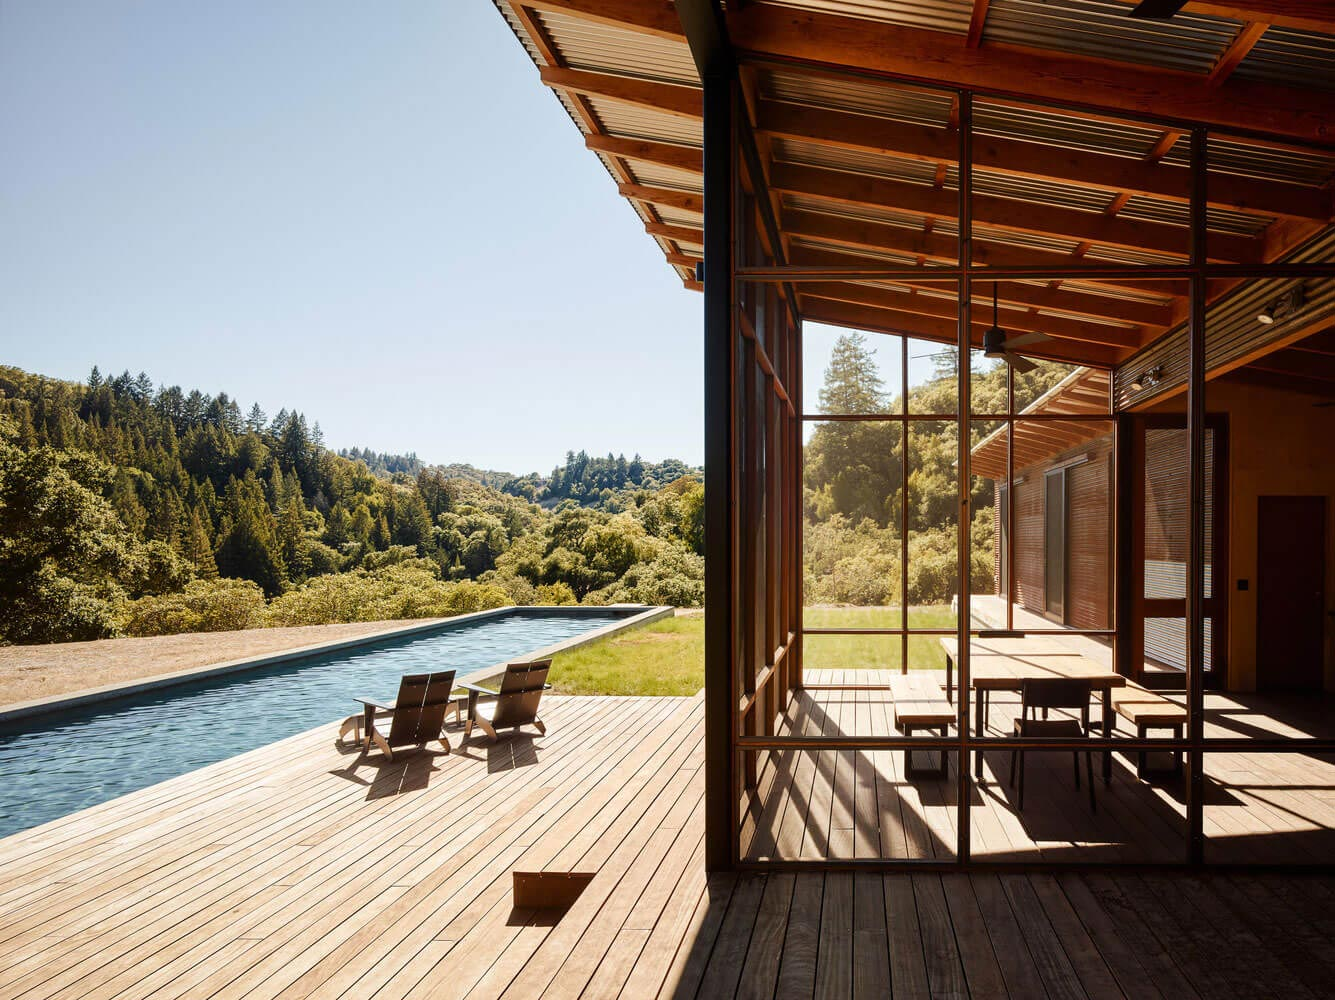 Amenagement Terrasse En Bois Composite Malcolm Davis Architecture Built An Off The Grid Home, An